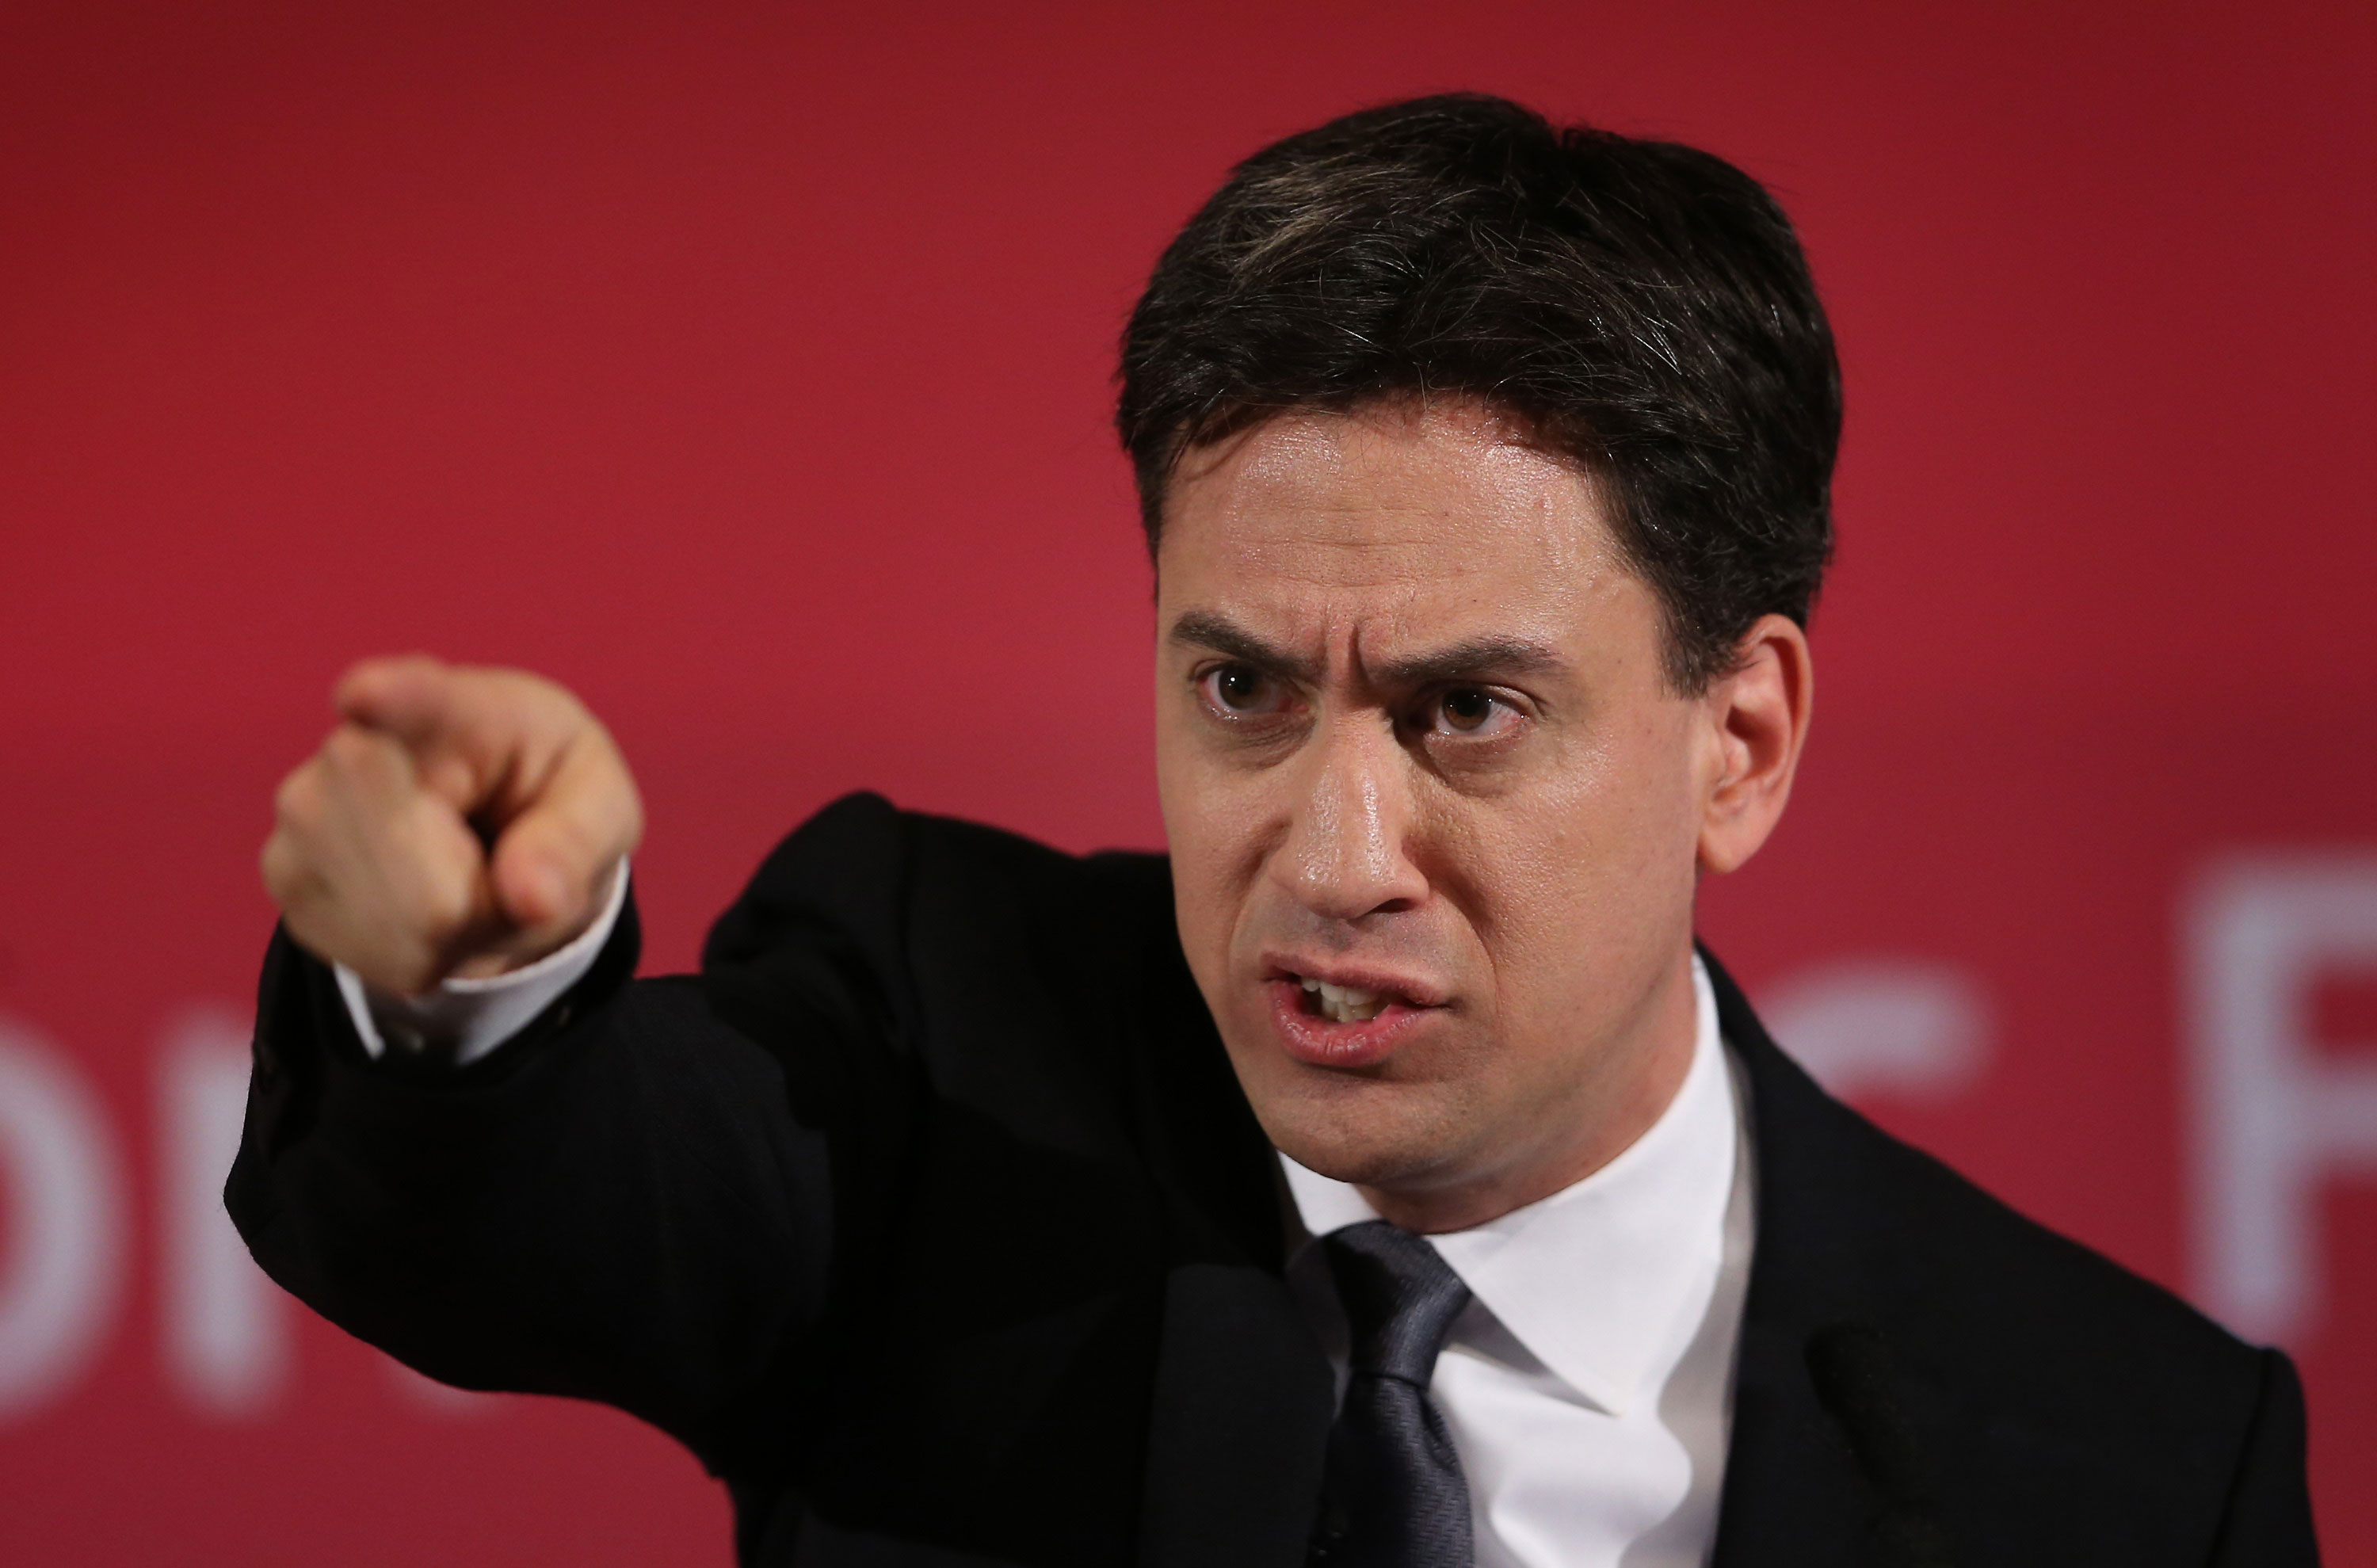 Ed Miliband backs British military action against Isis in